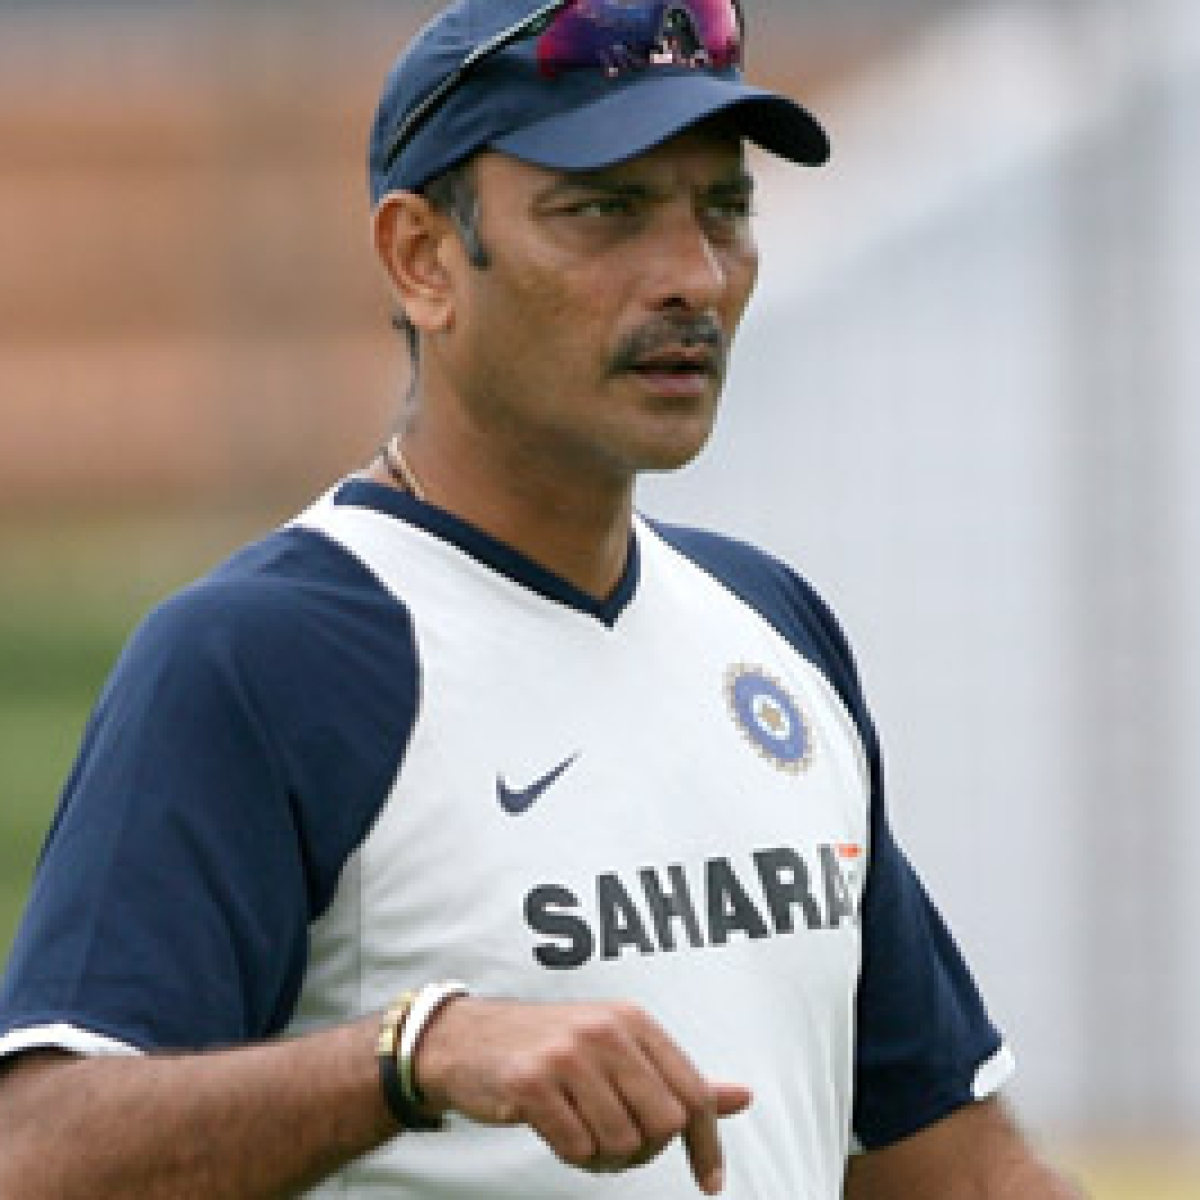 'When he's sober he talks lot of sense': Twitter reacts to Ravi Shastri's comments on CAA